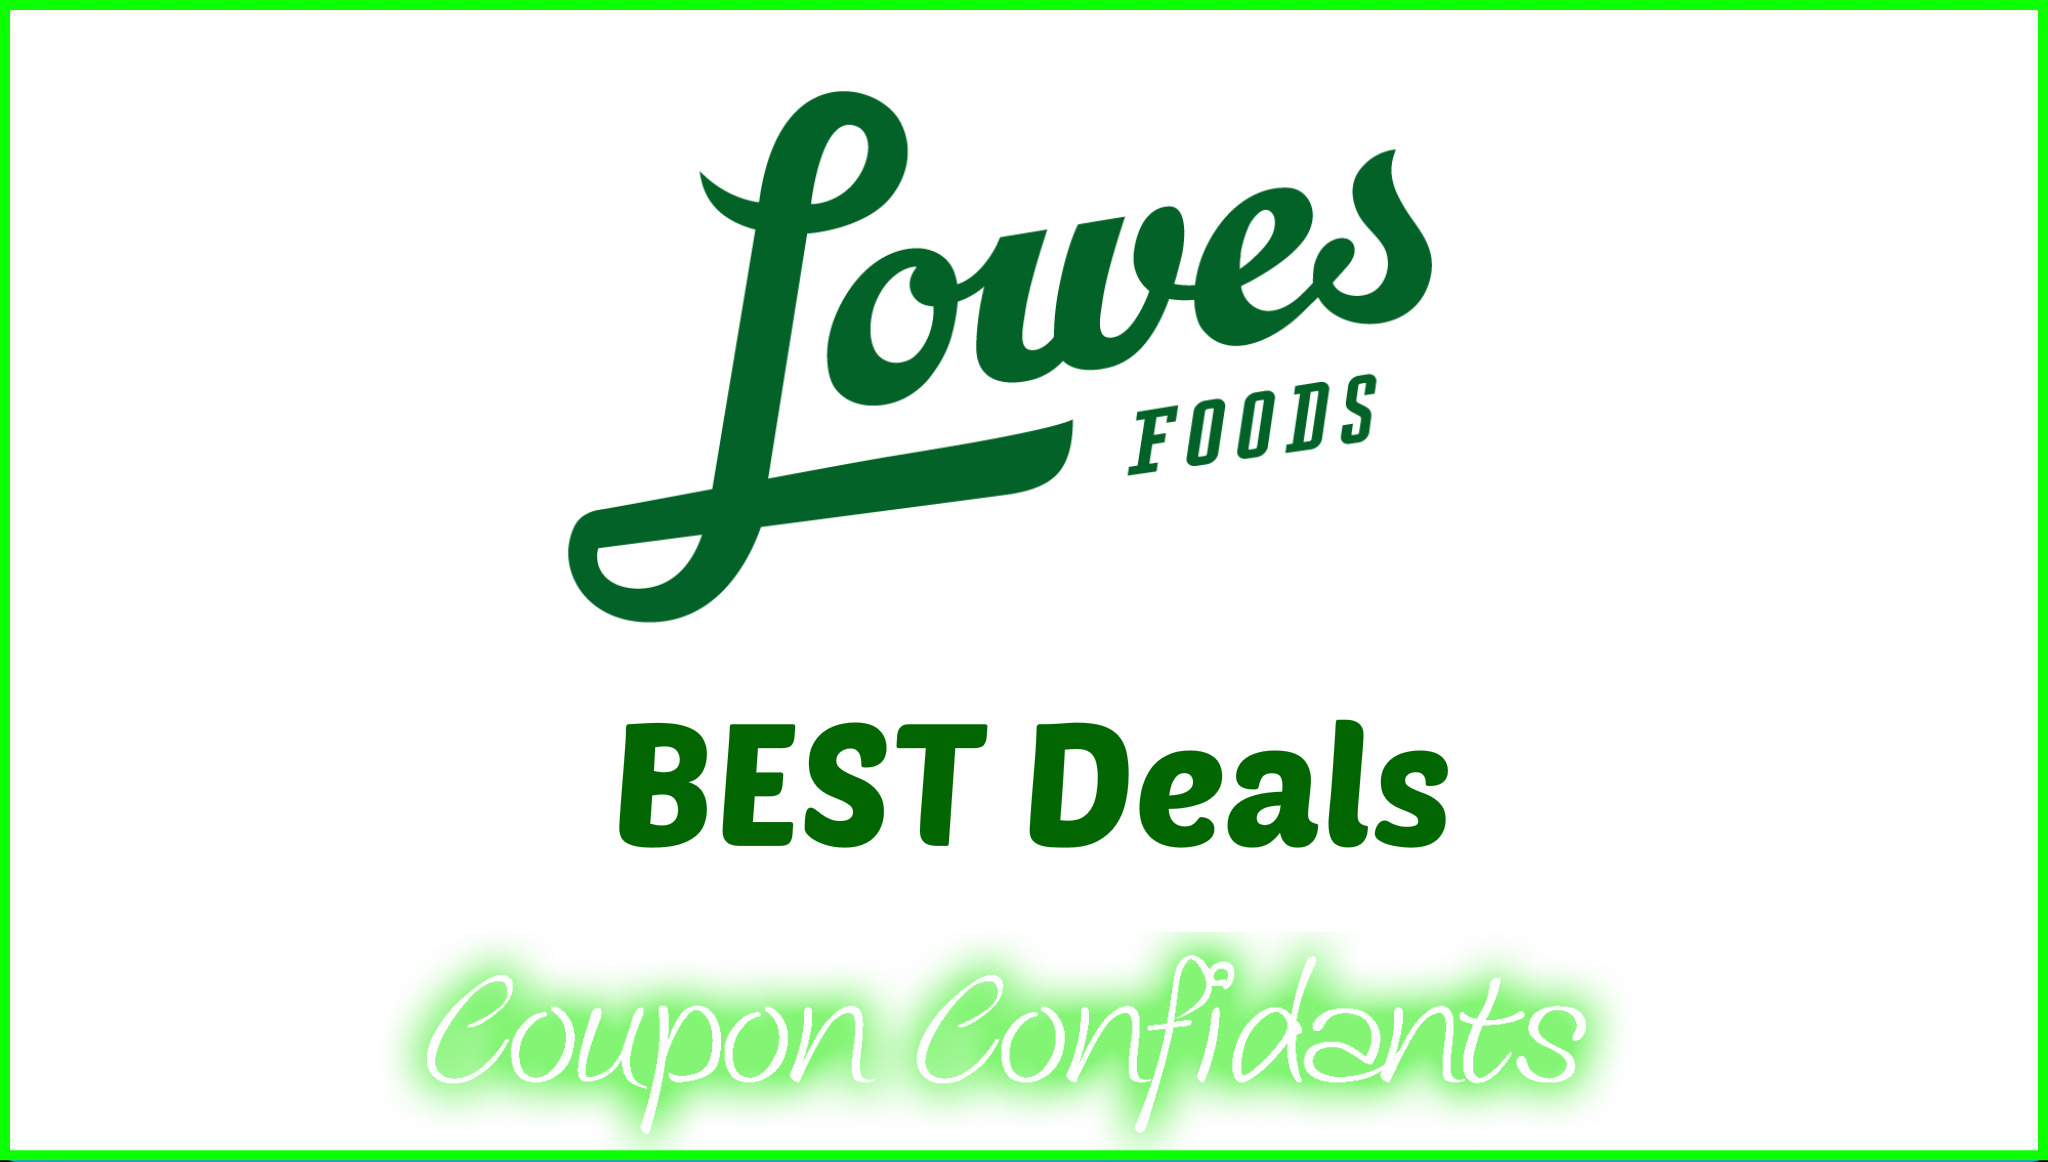 Lowes Foods - Aug 16 - Aug 22